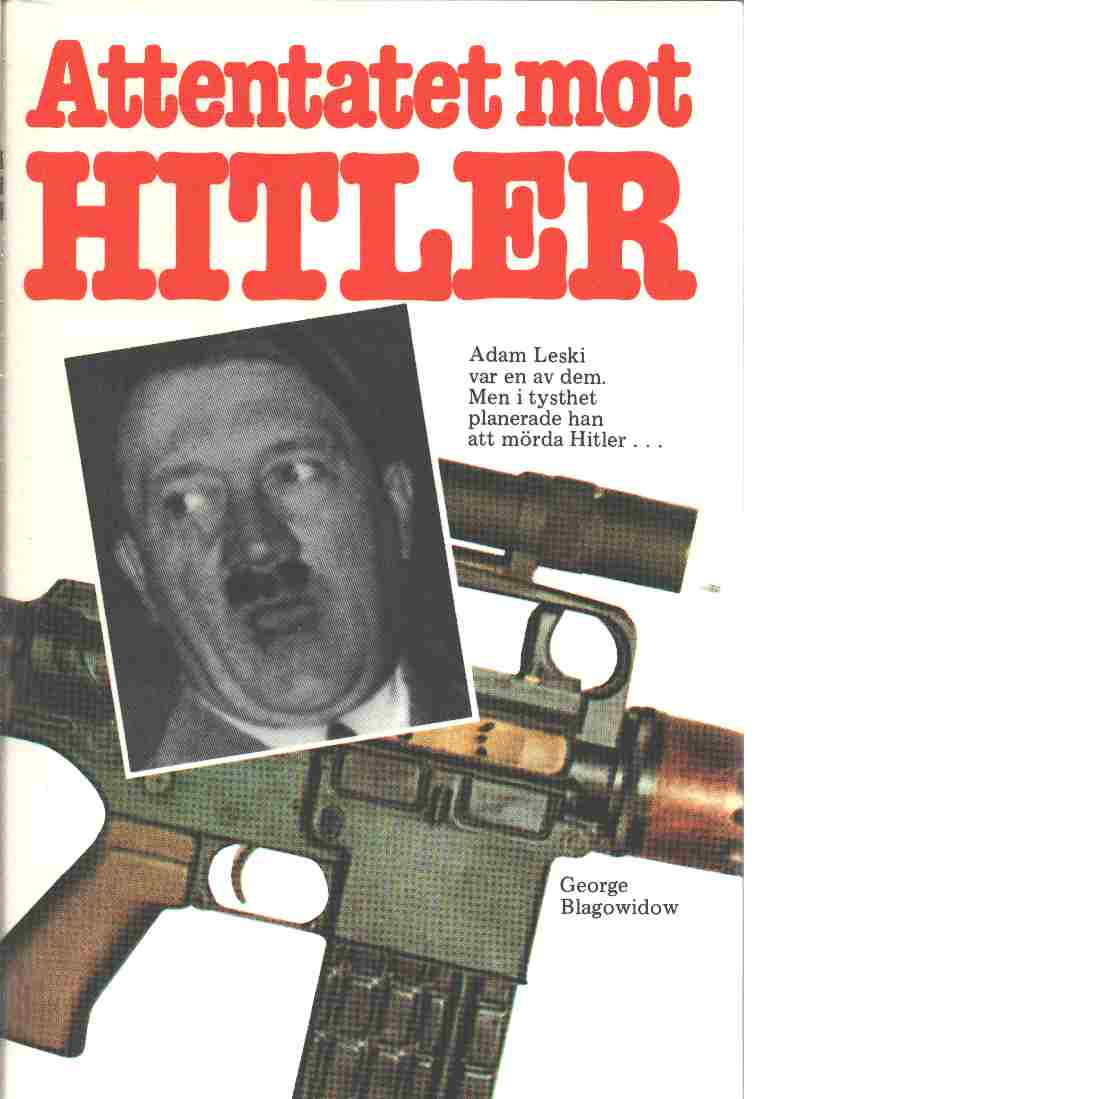 Attentatet mot Hitler - Blagowidow, George